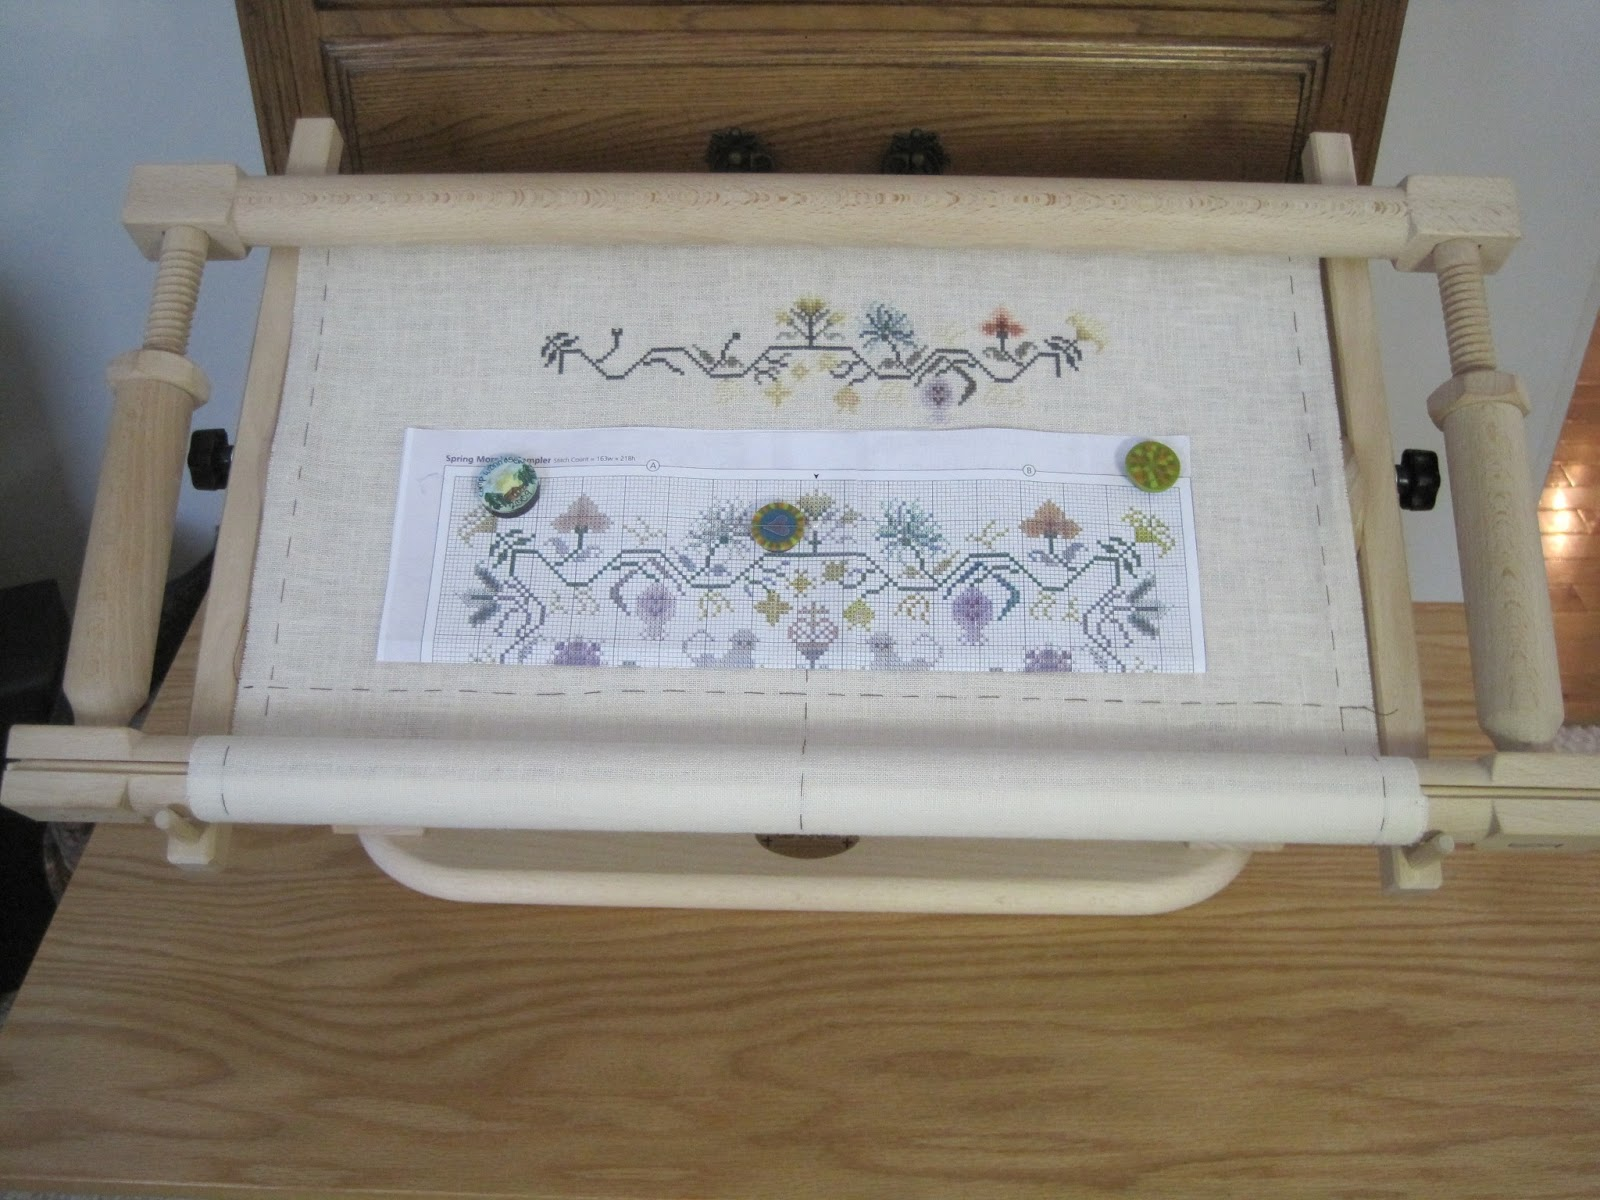 Old Fashioned Stitching Frames Stands Adornment - Picture Frame ...